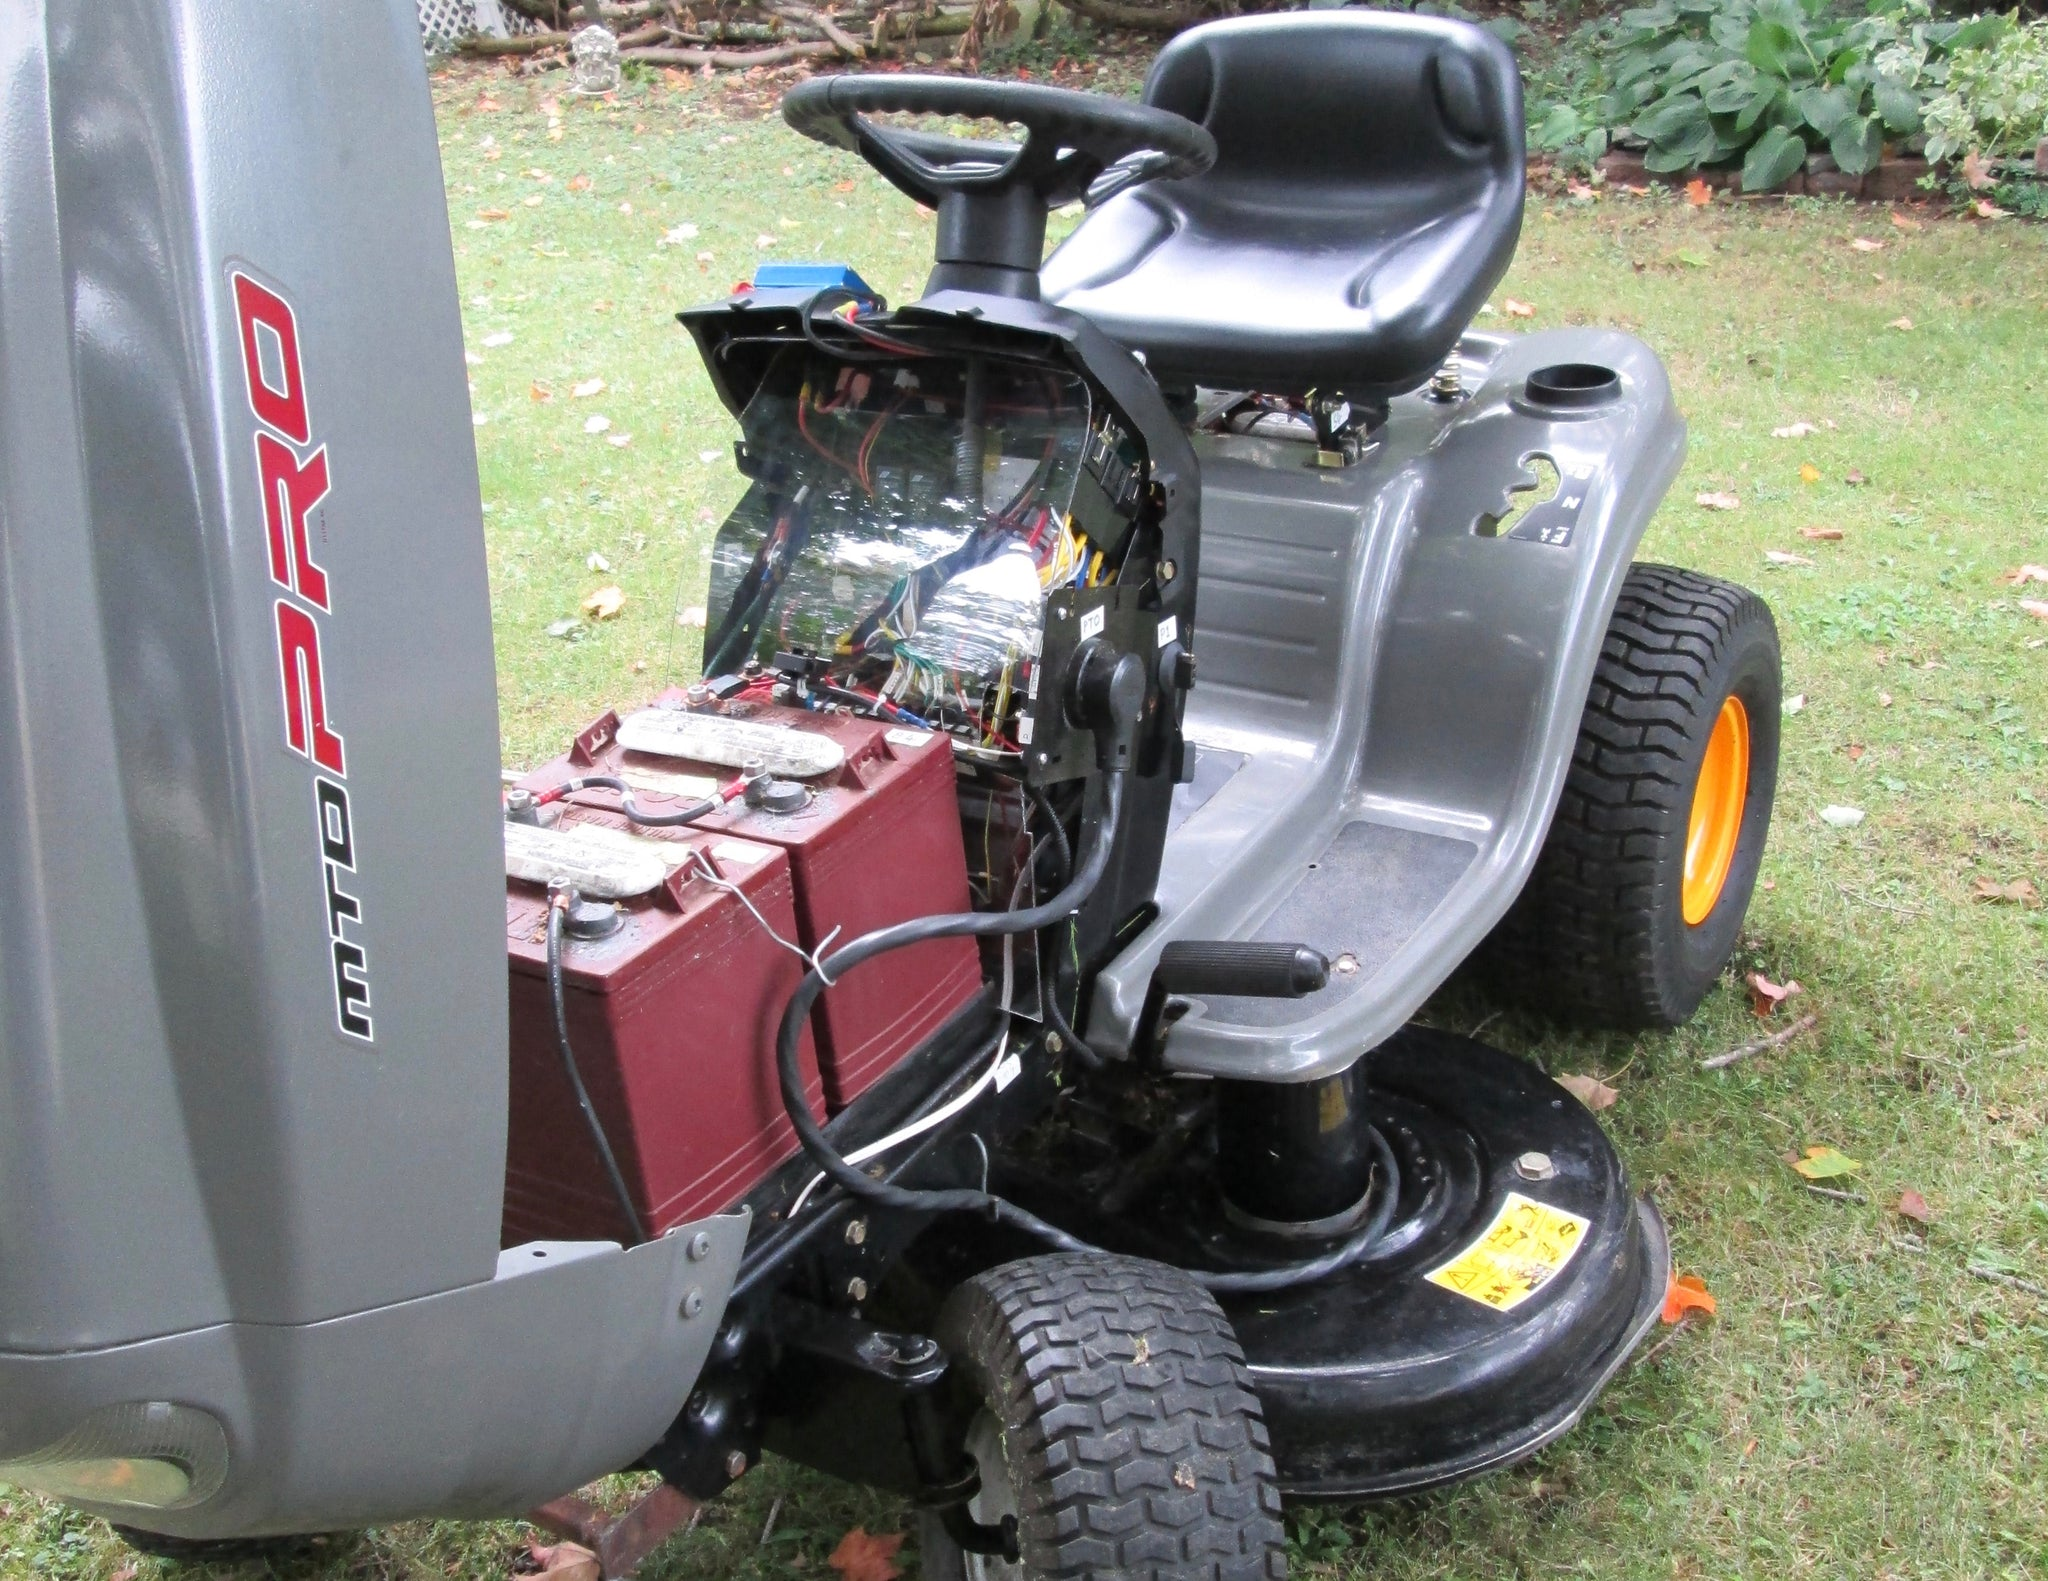 Convert your lawn tractor to clean quiet electric with Edmond's conversion kit clean battery power